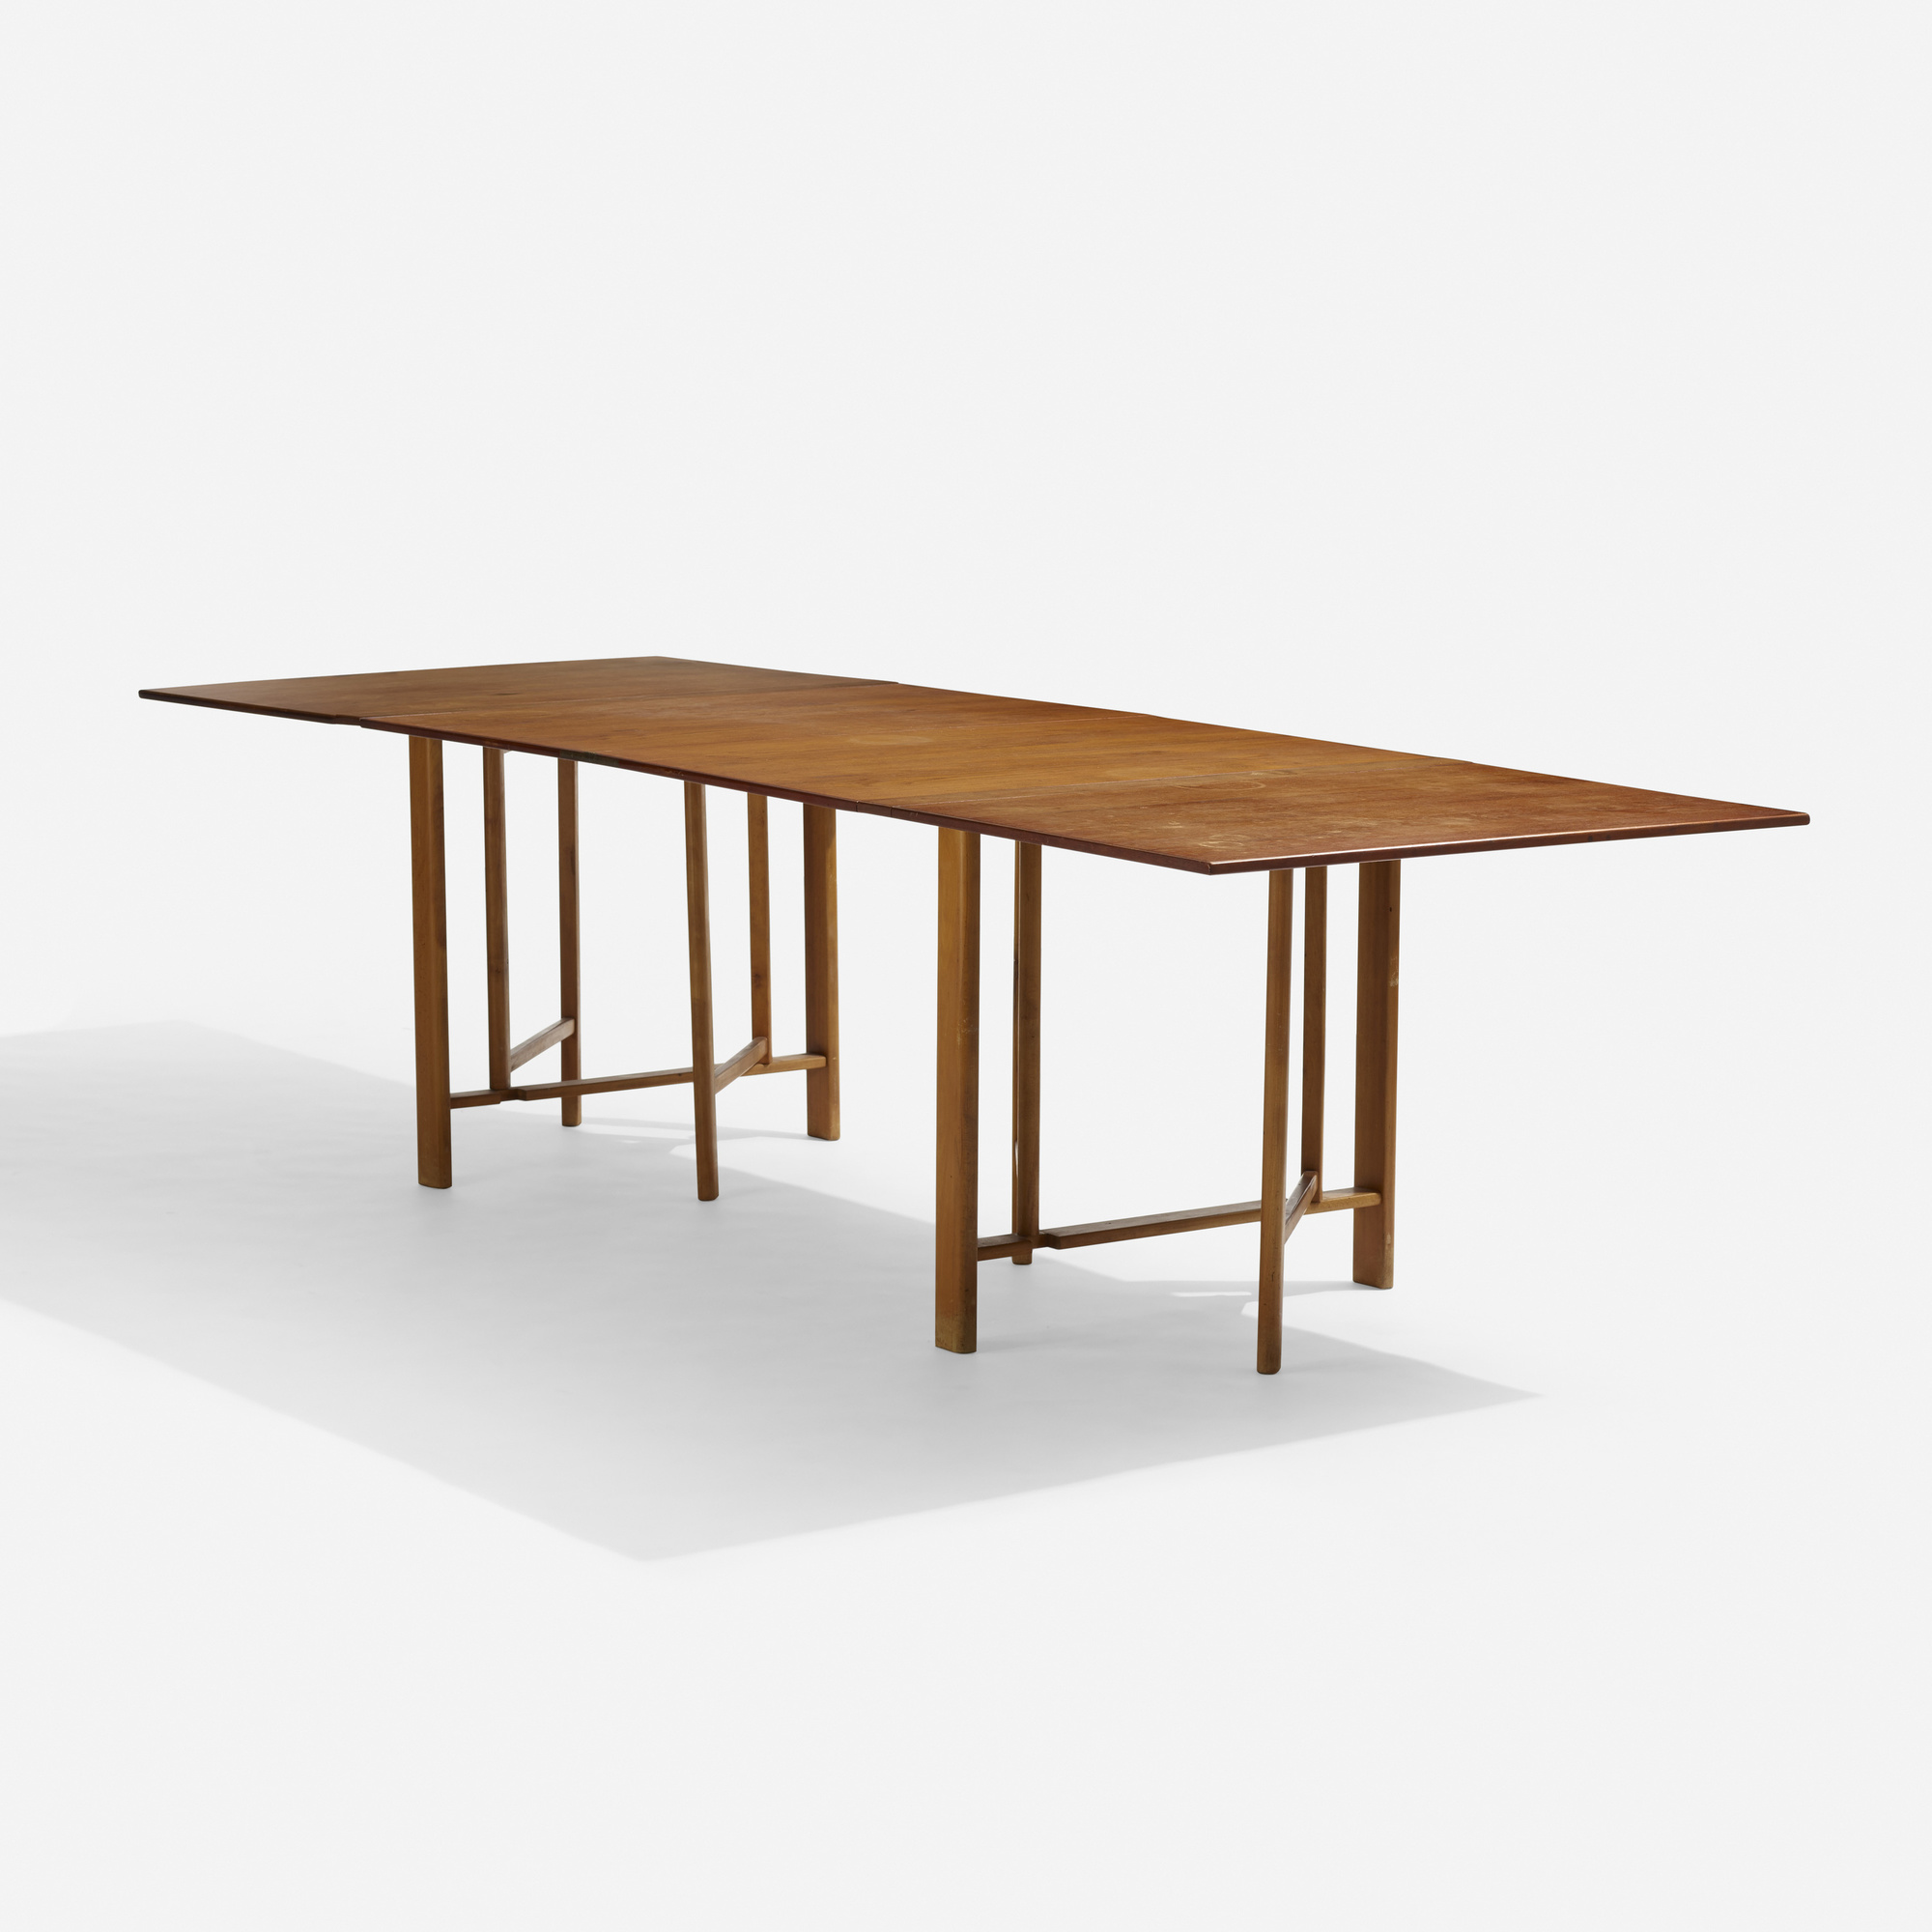 267: Bruno Mathsson / Maria folding table (1 of 5)